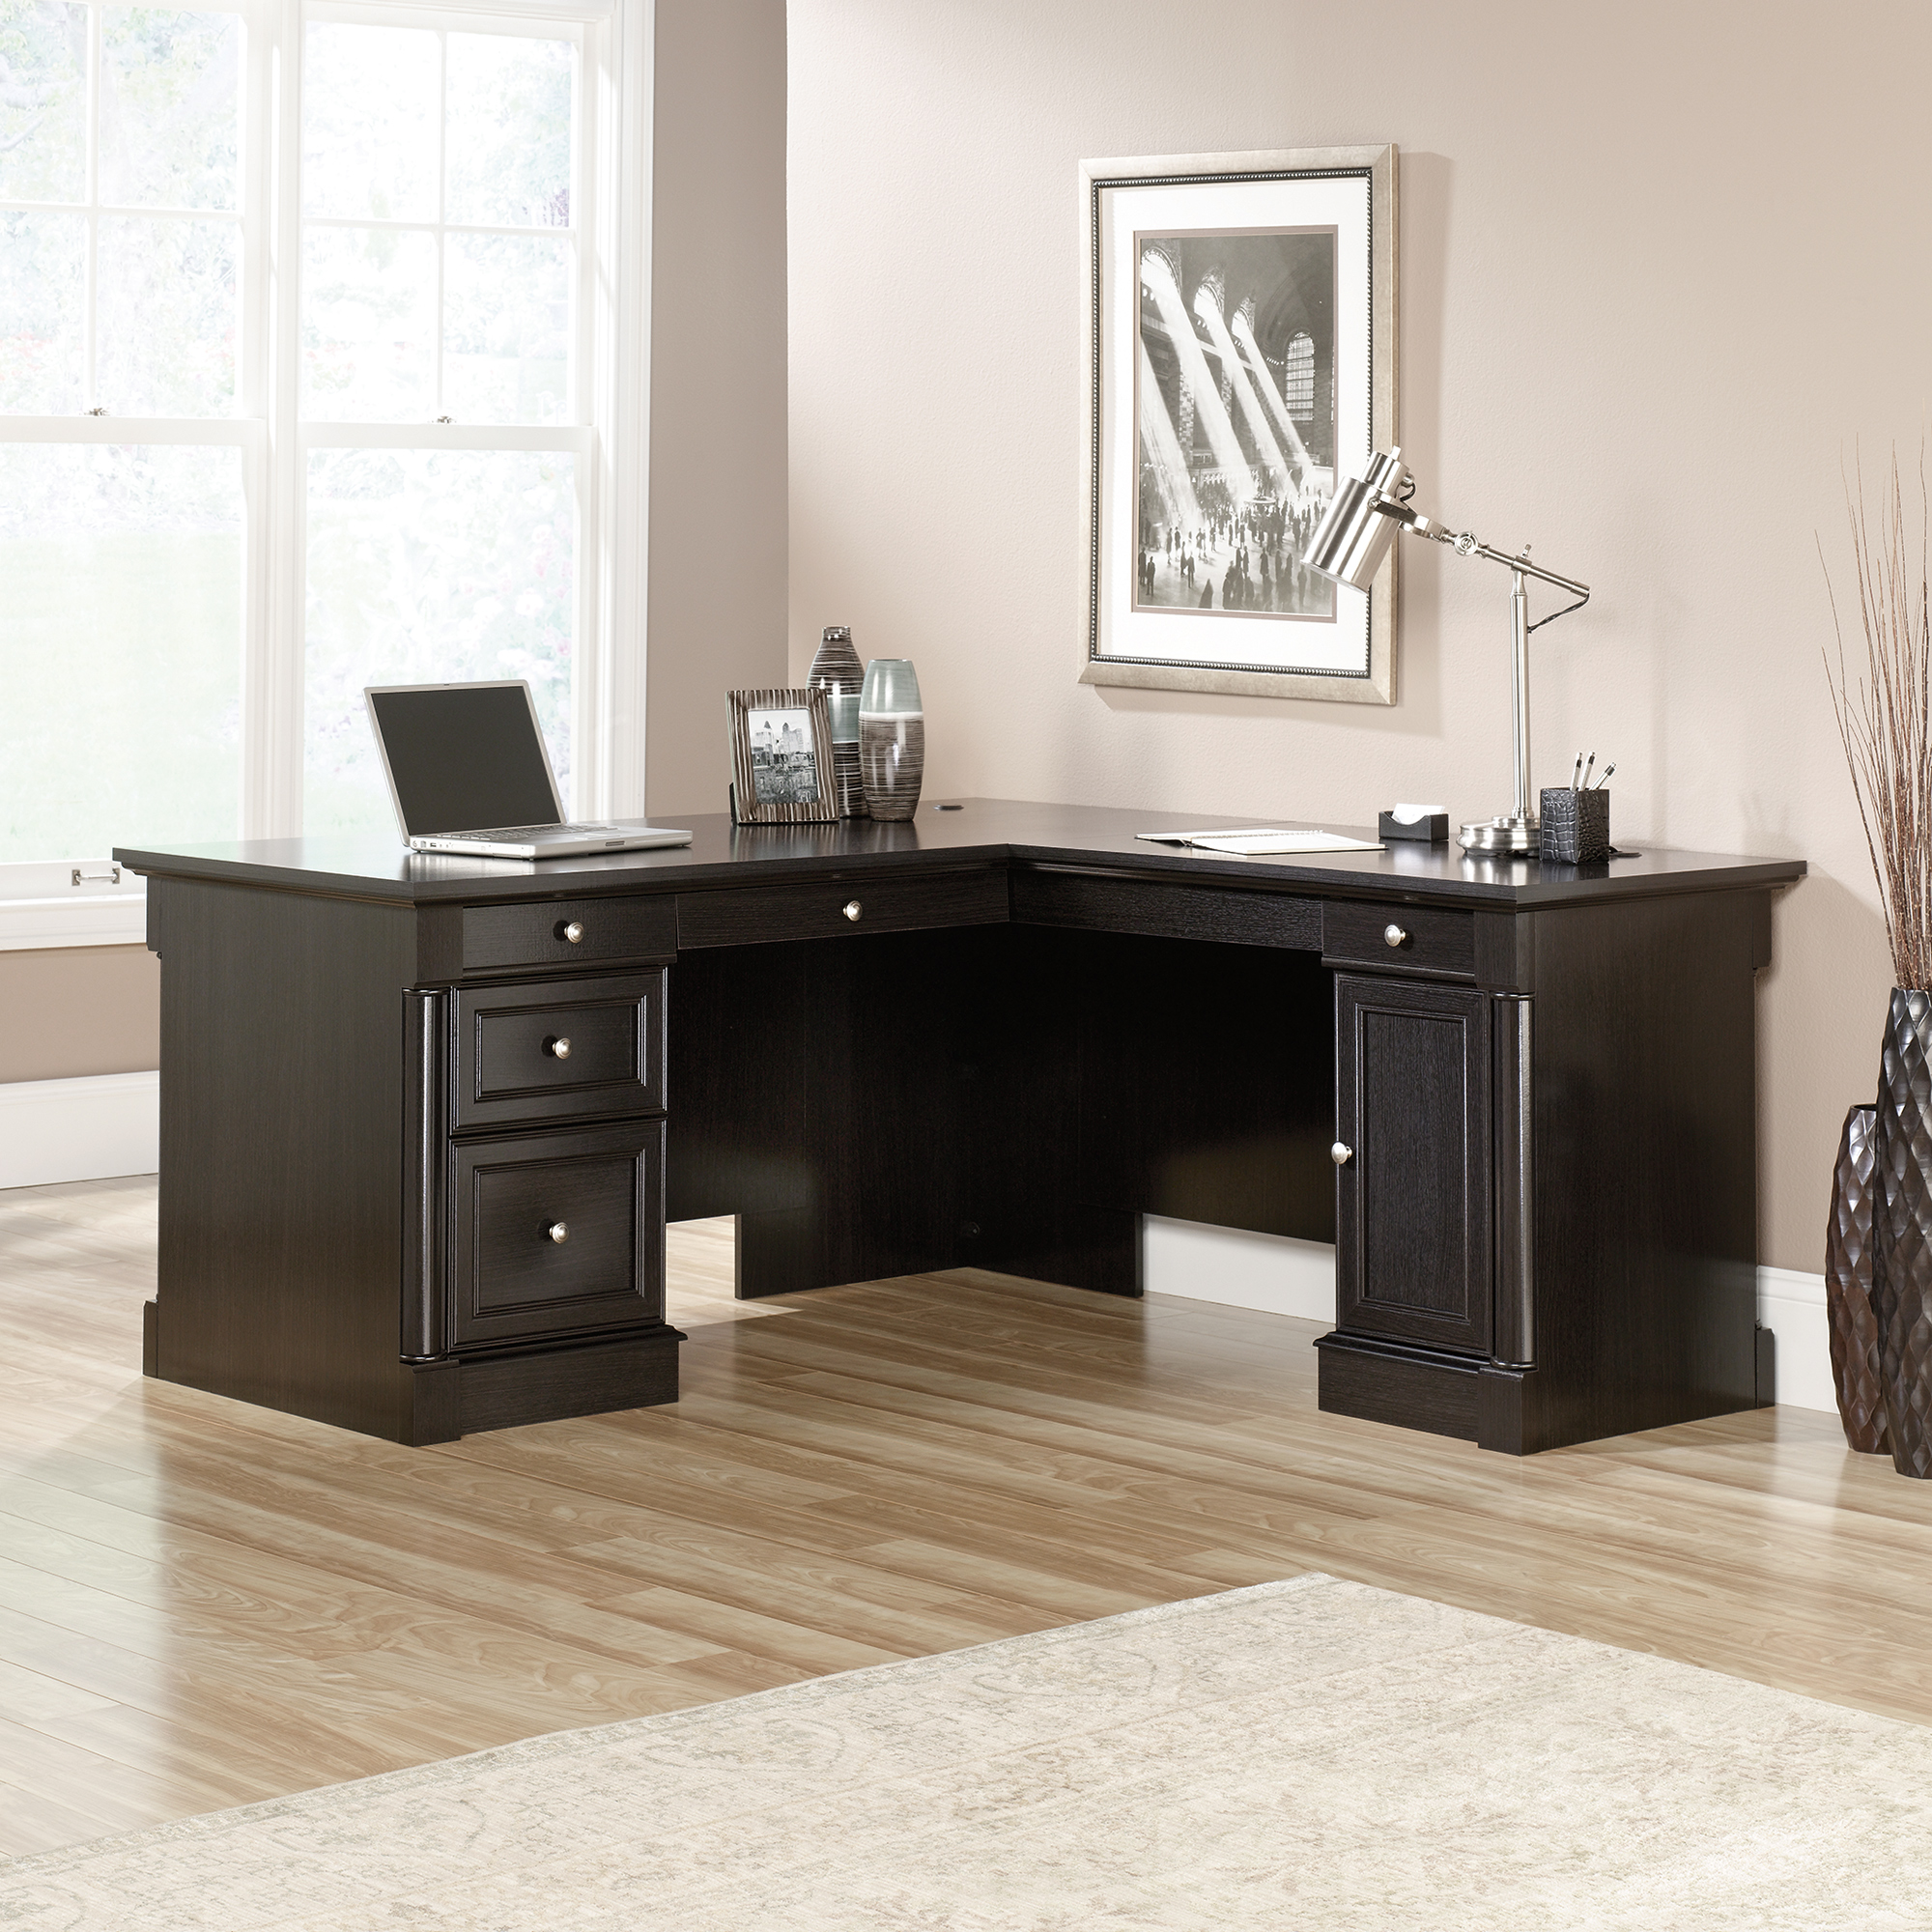 L Shaped Desk for More Productive Time